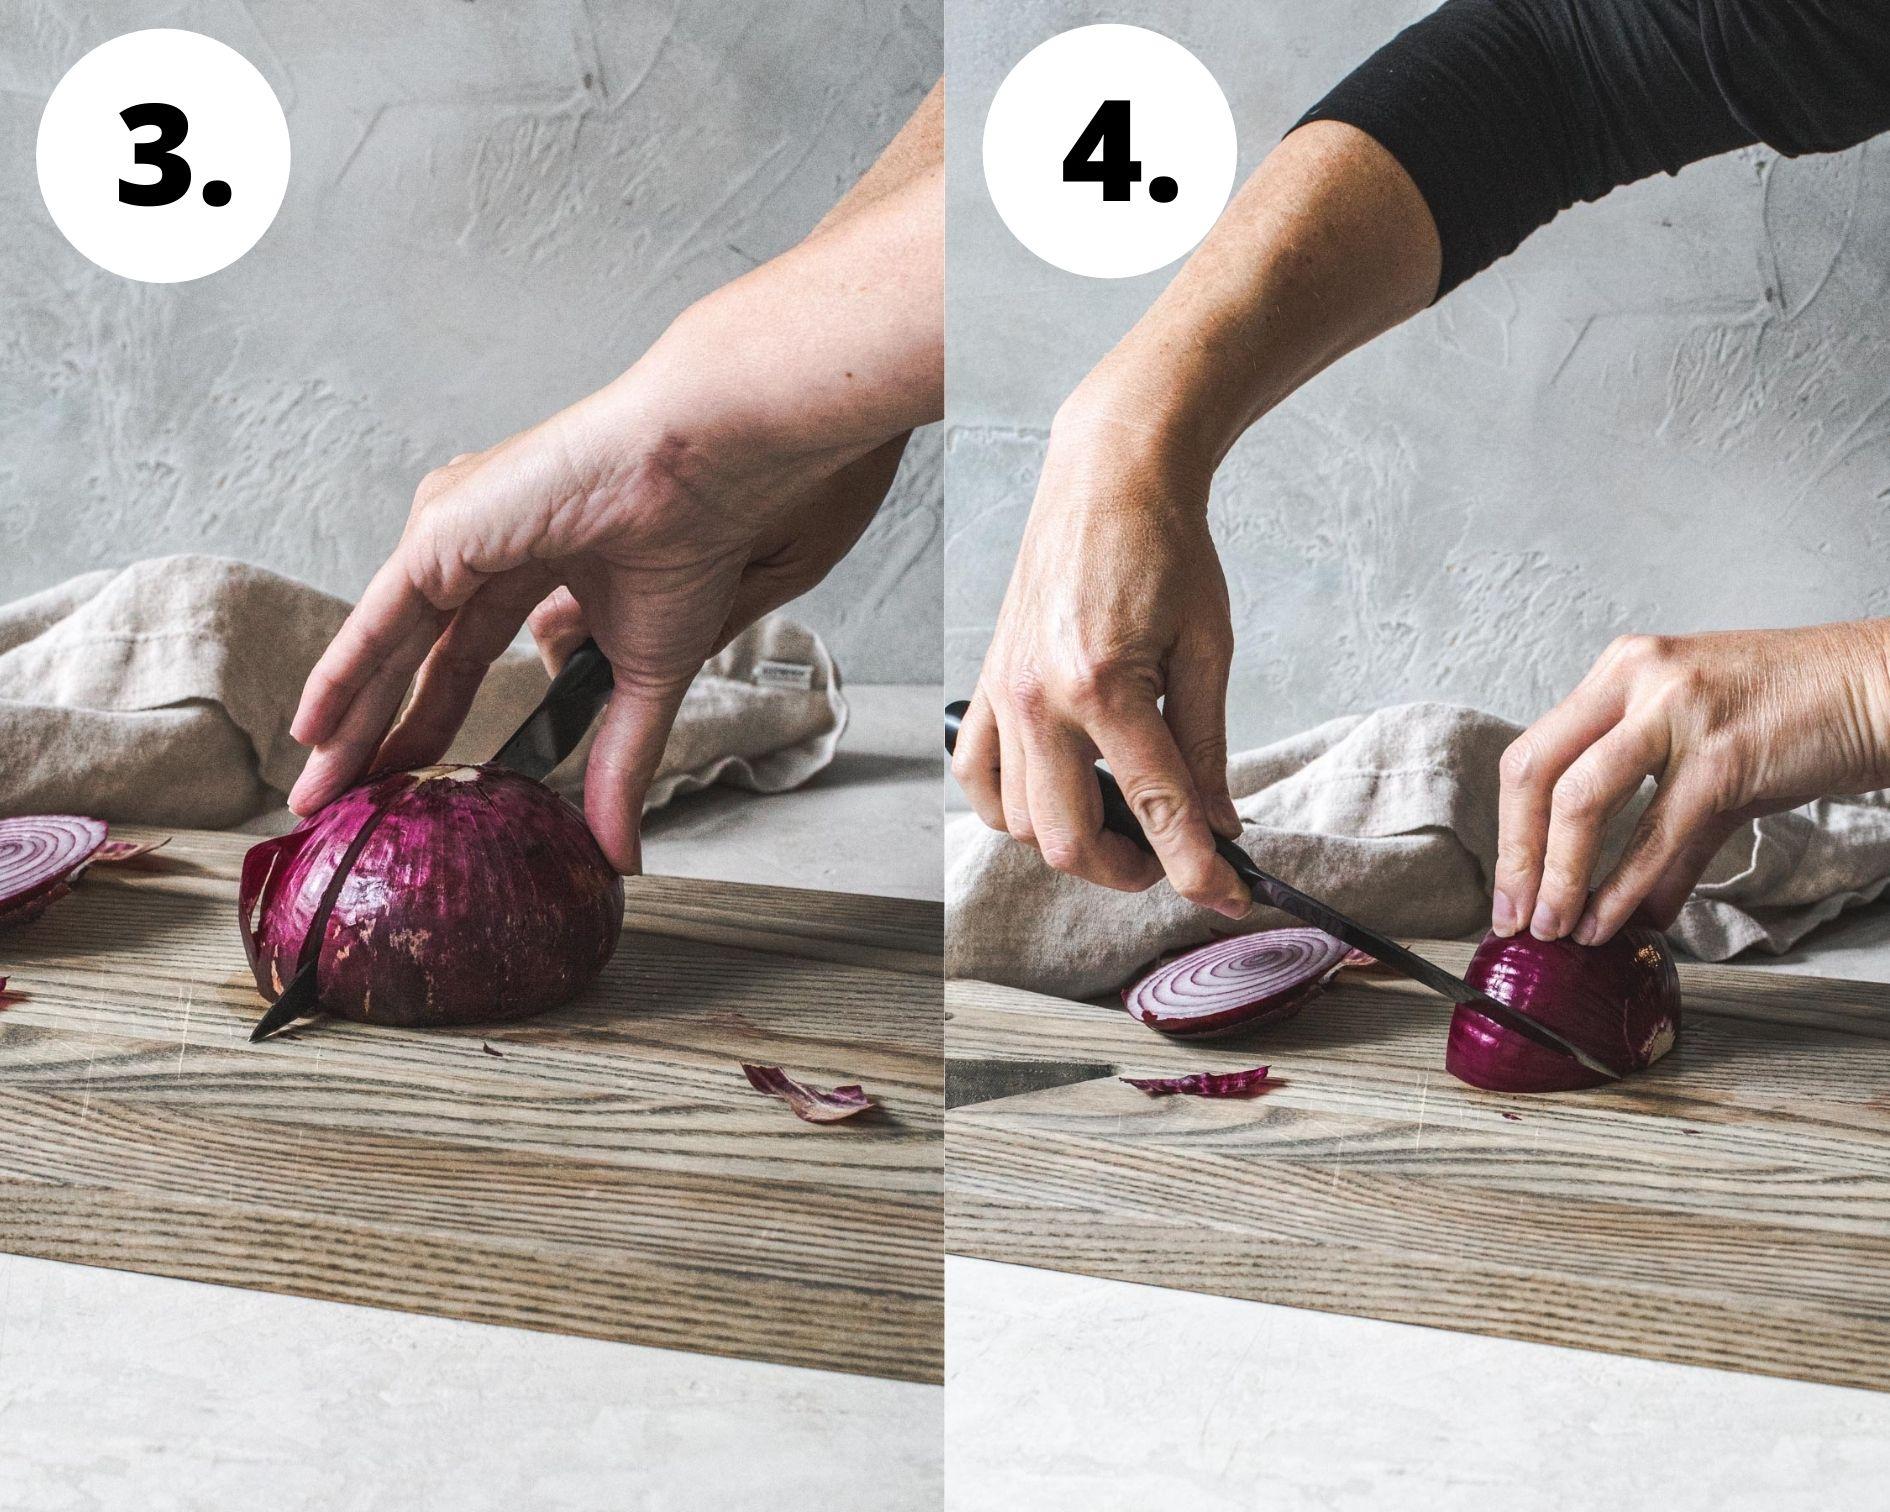 Process steps 3 and 4 for how to cut an onion.